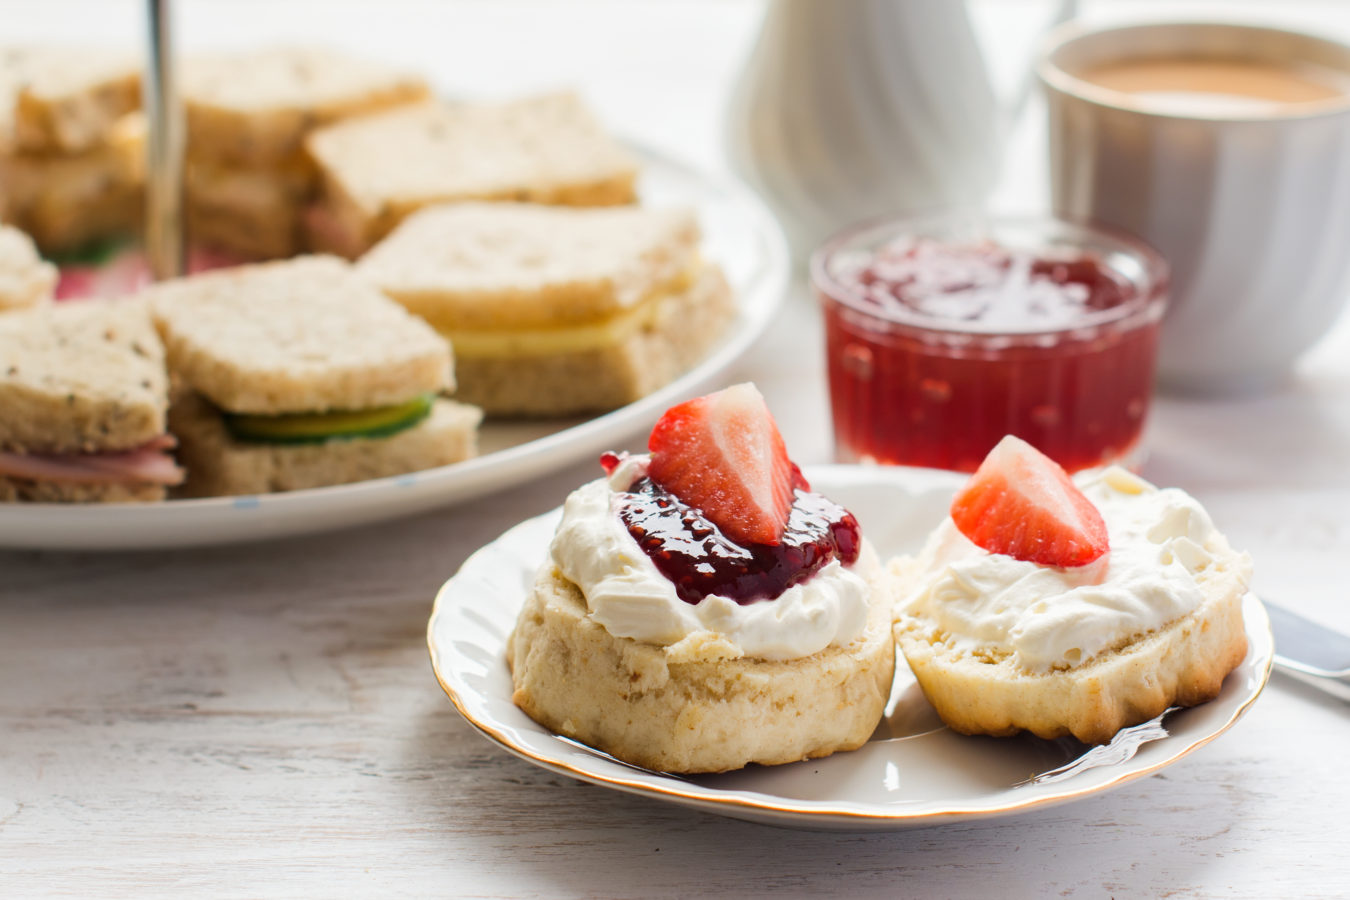 Traditional English afternoon tea: scones with clotted cream